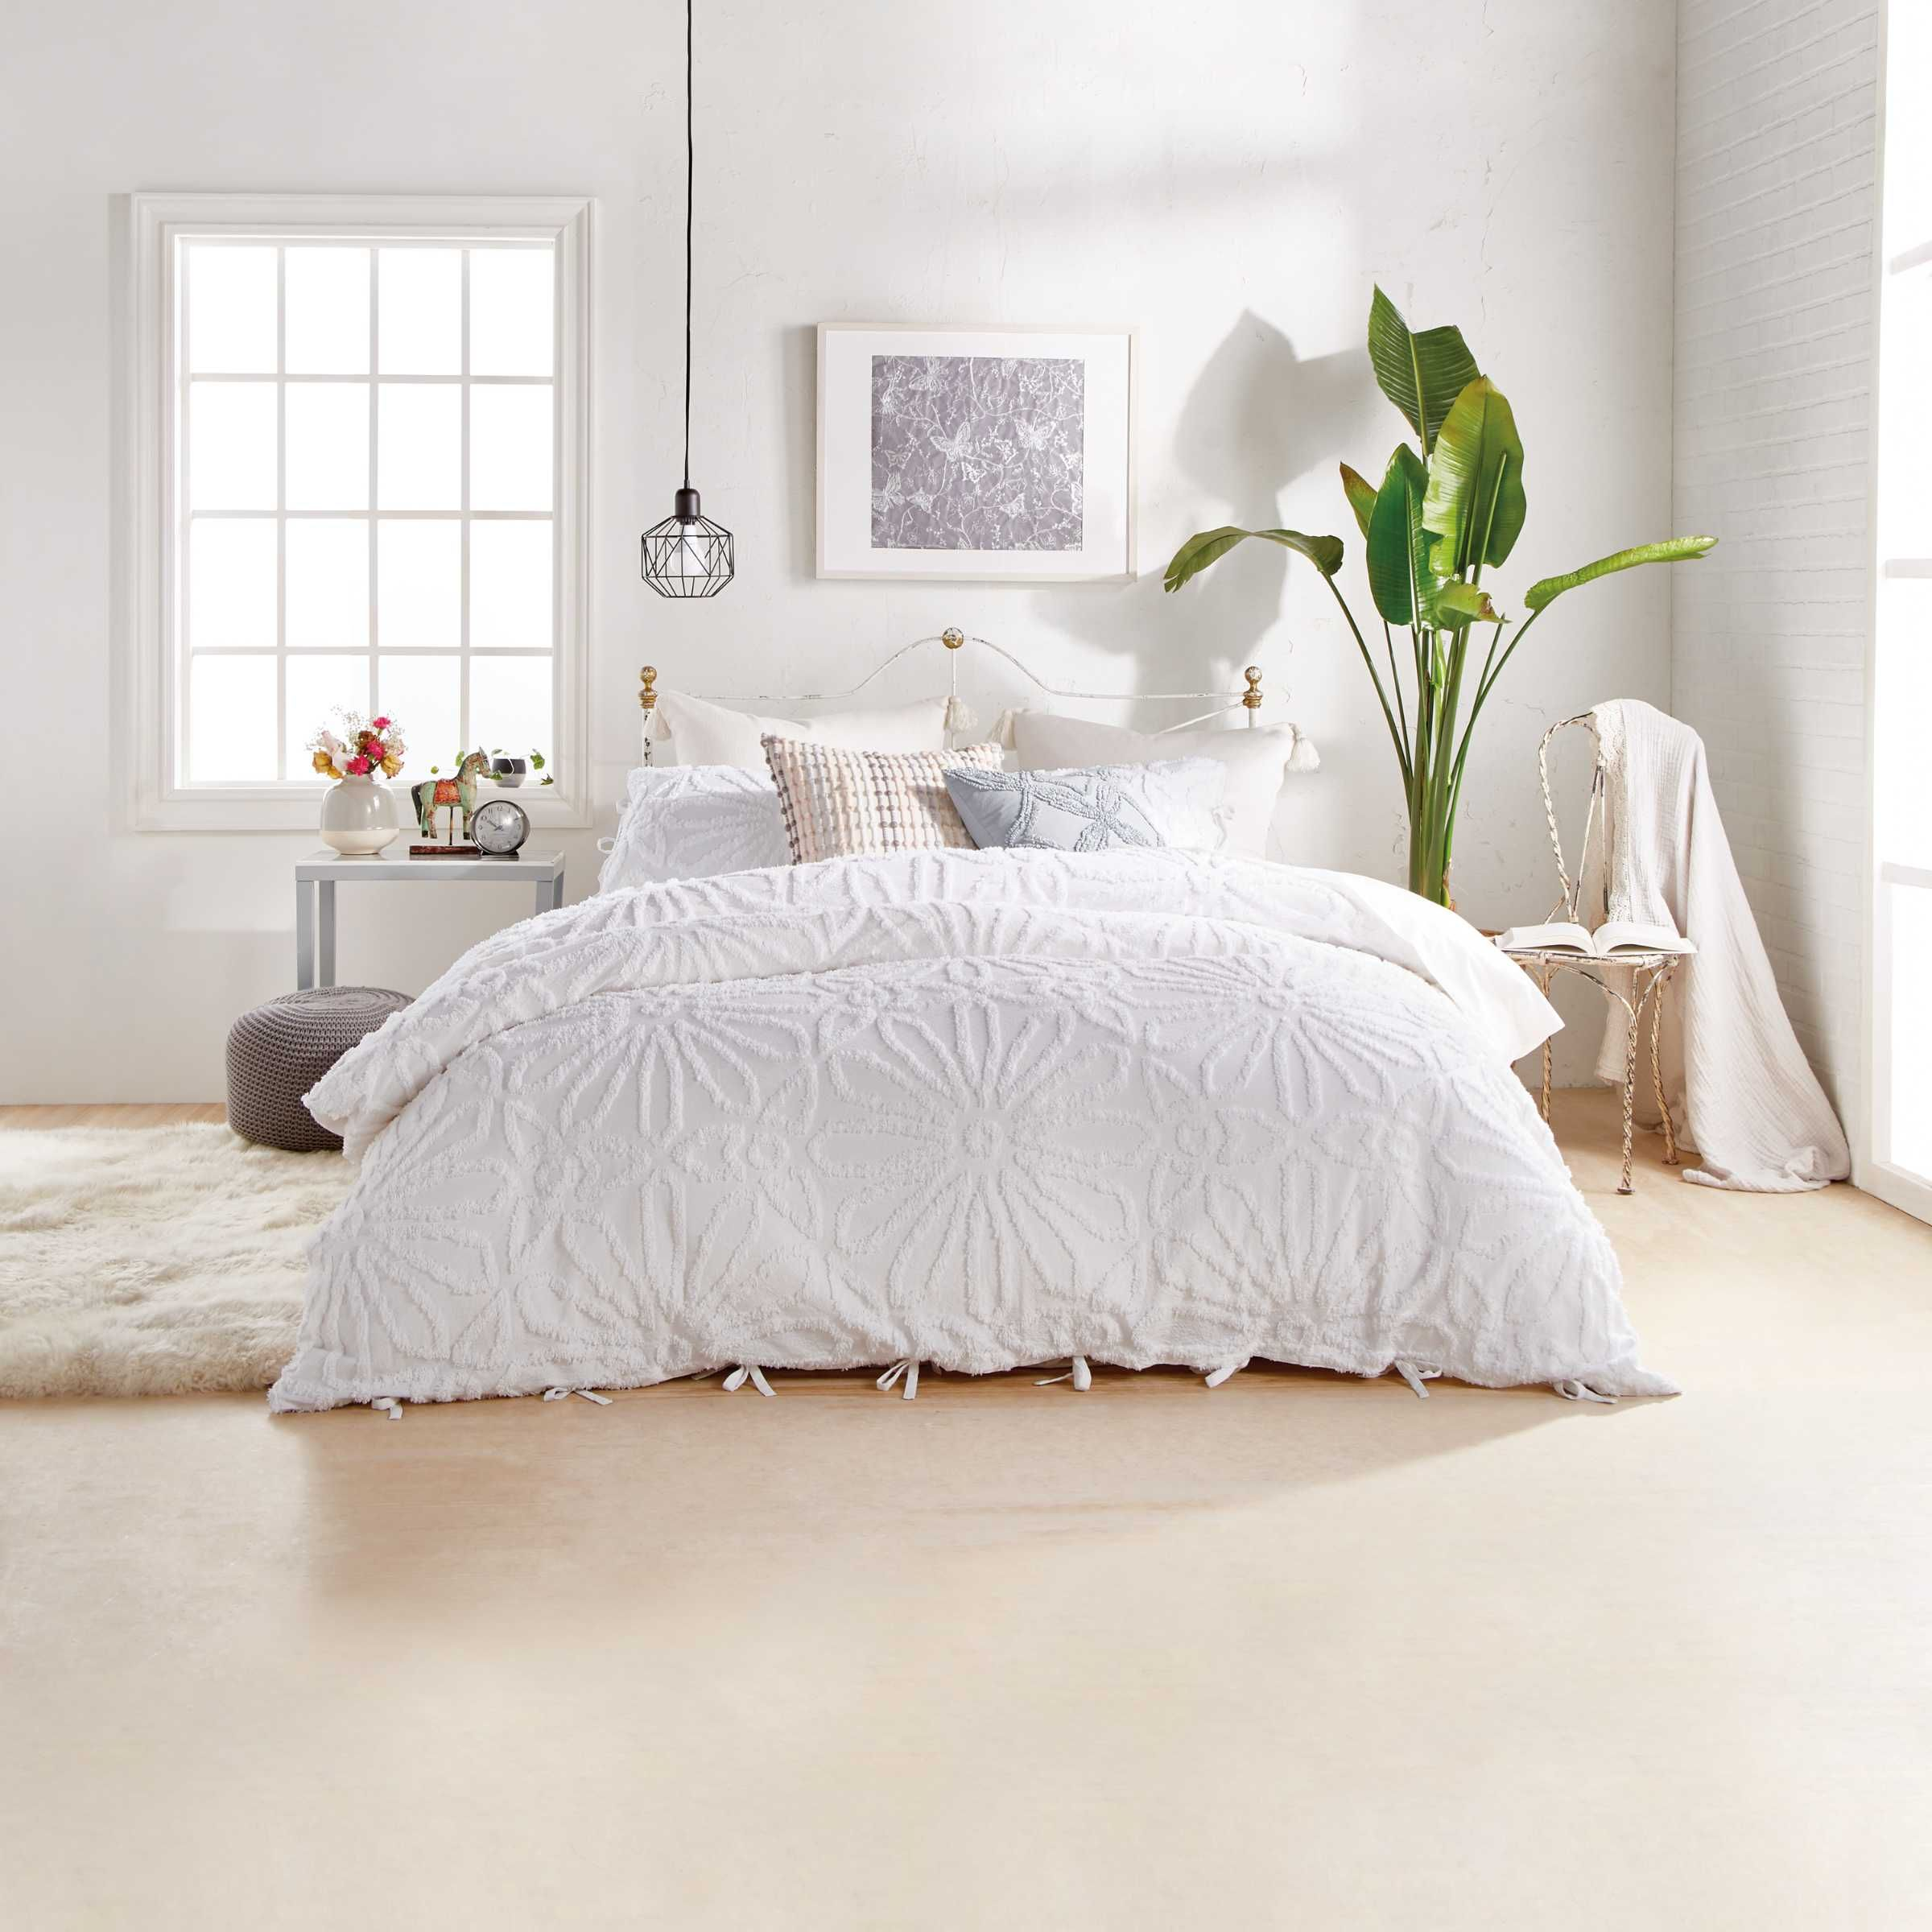 White Textured Bedding Chenille Medallion Bed Linen Bedeck Home